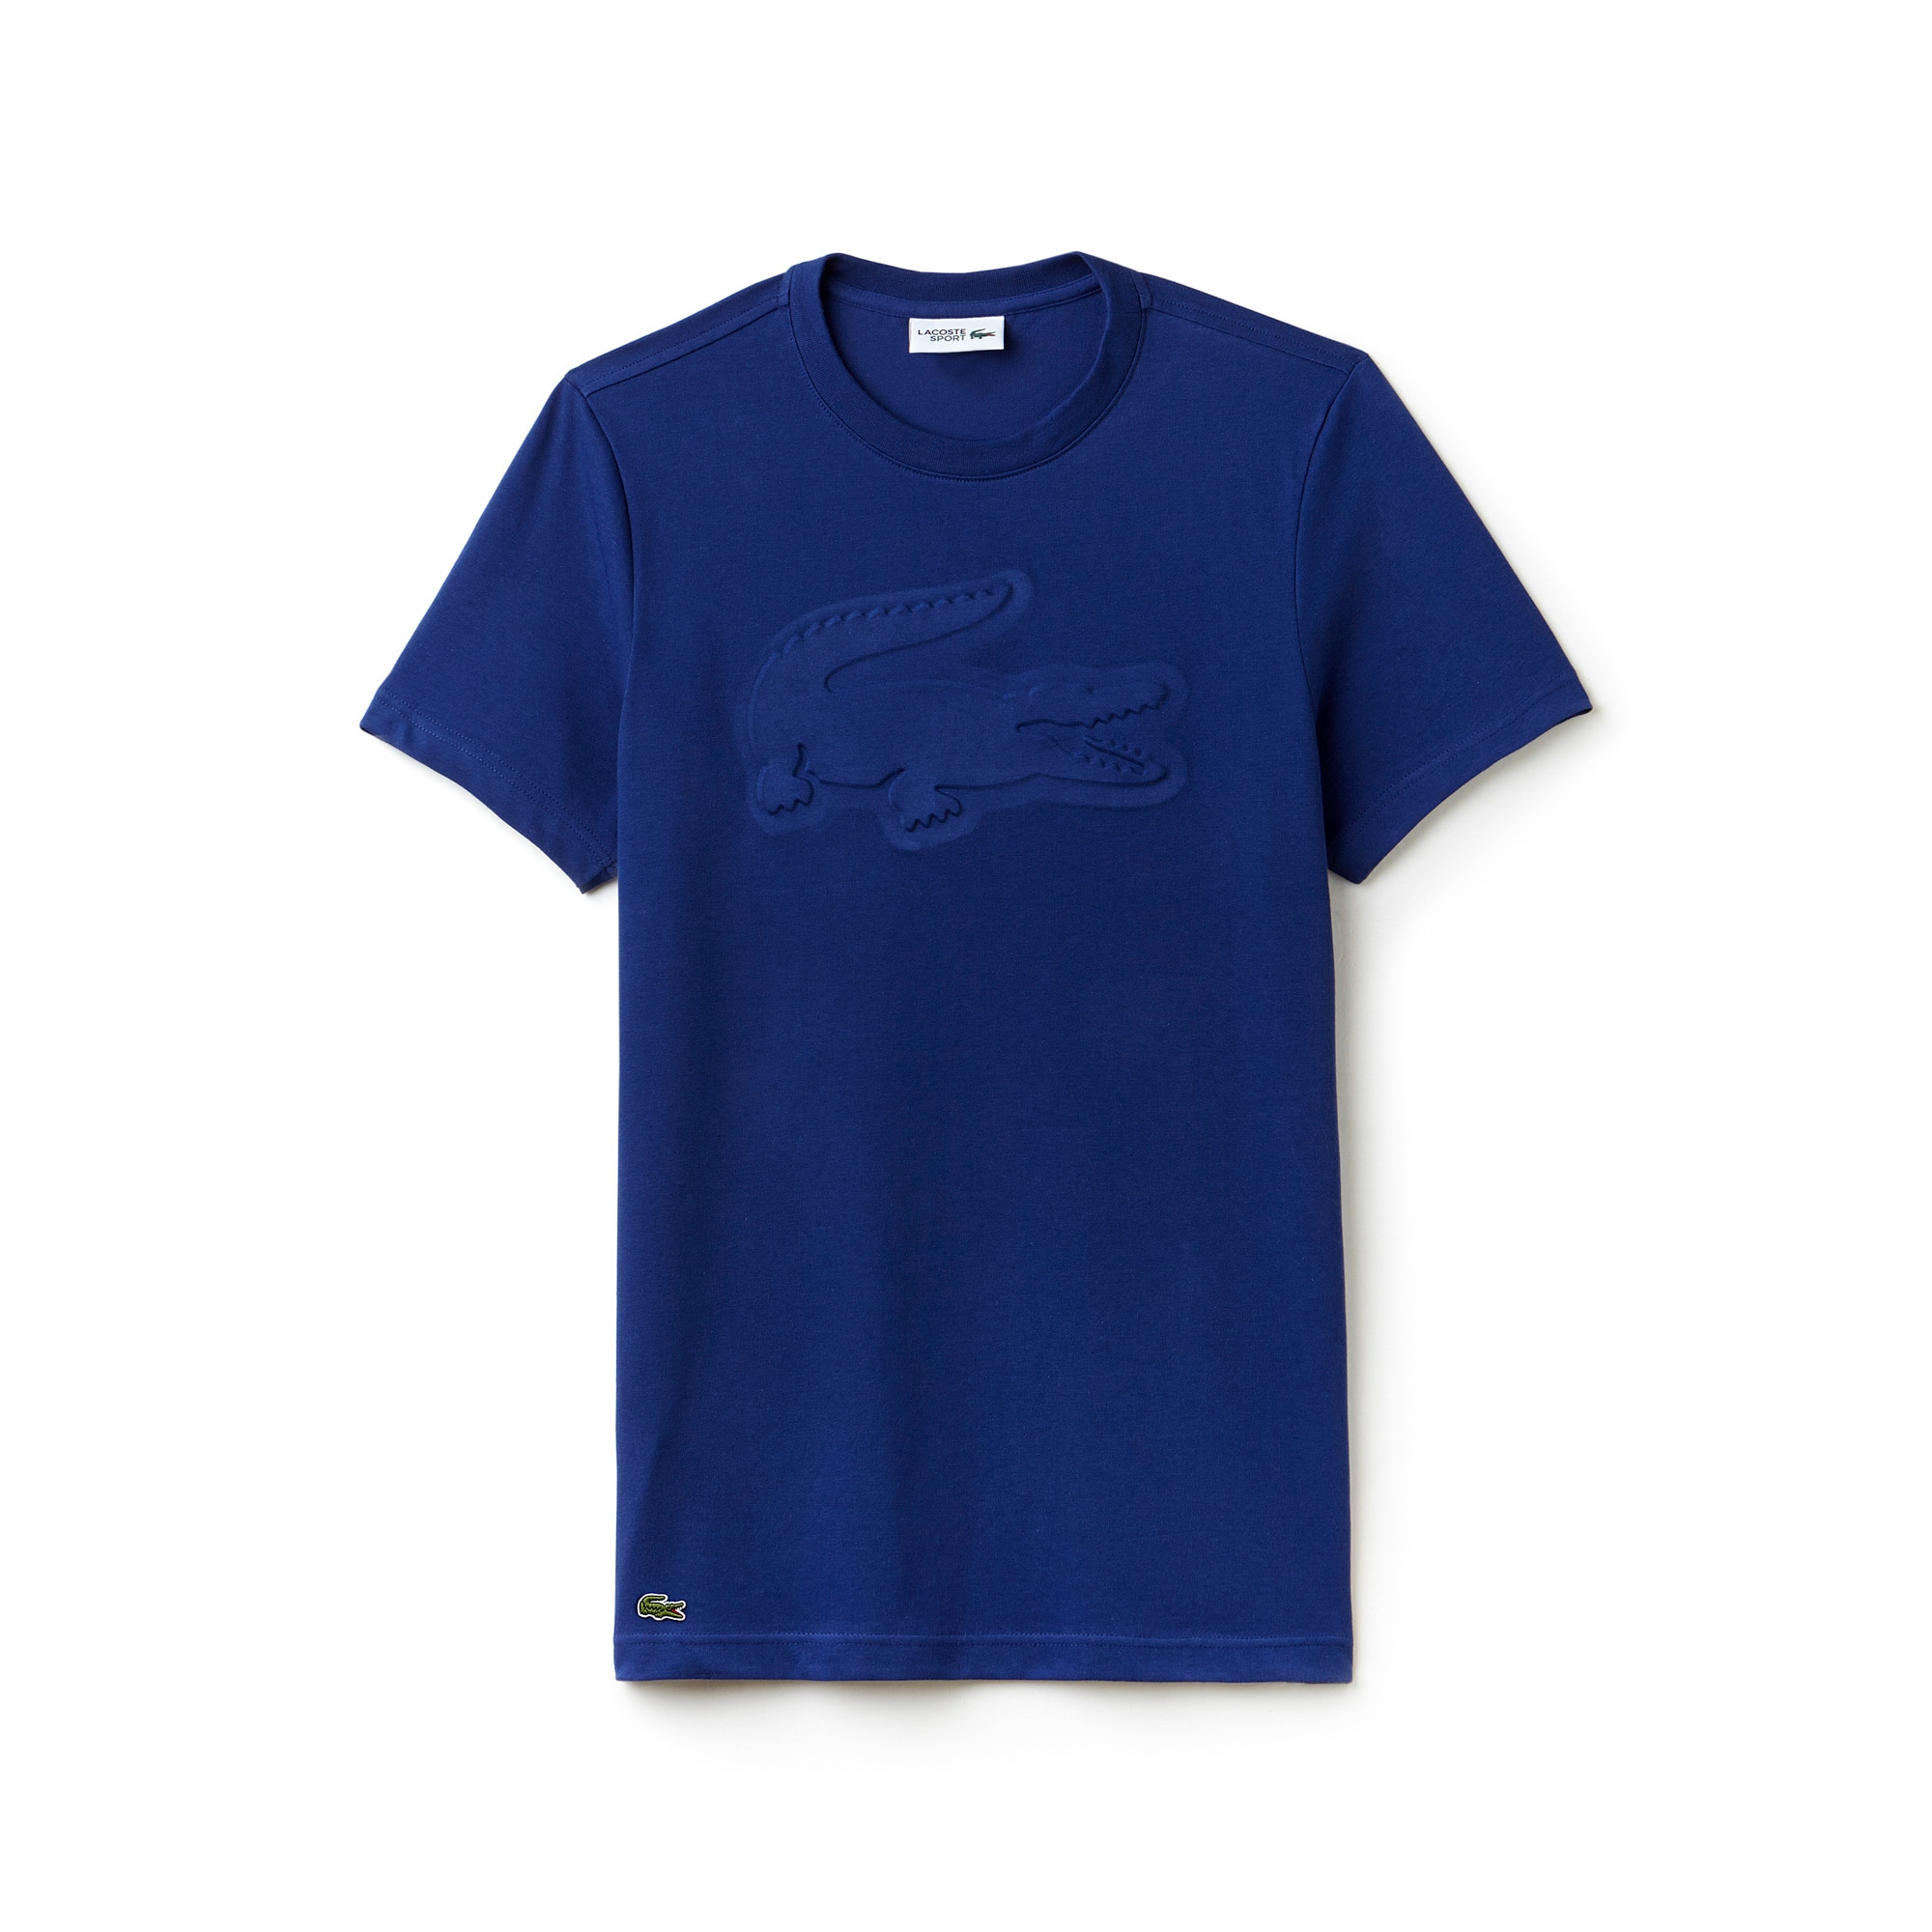 Men's  SPORT Tennis Oversize Croc Technical Jersey T-shirt